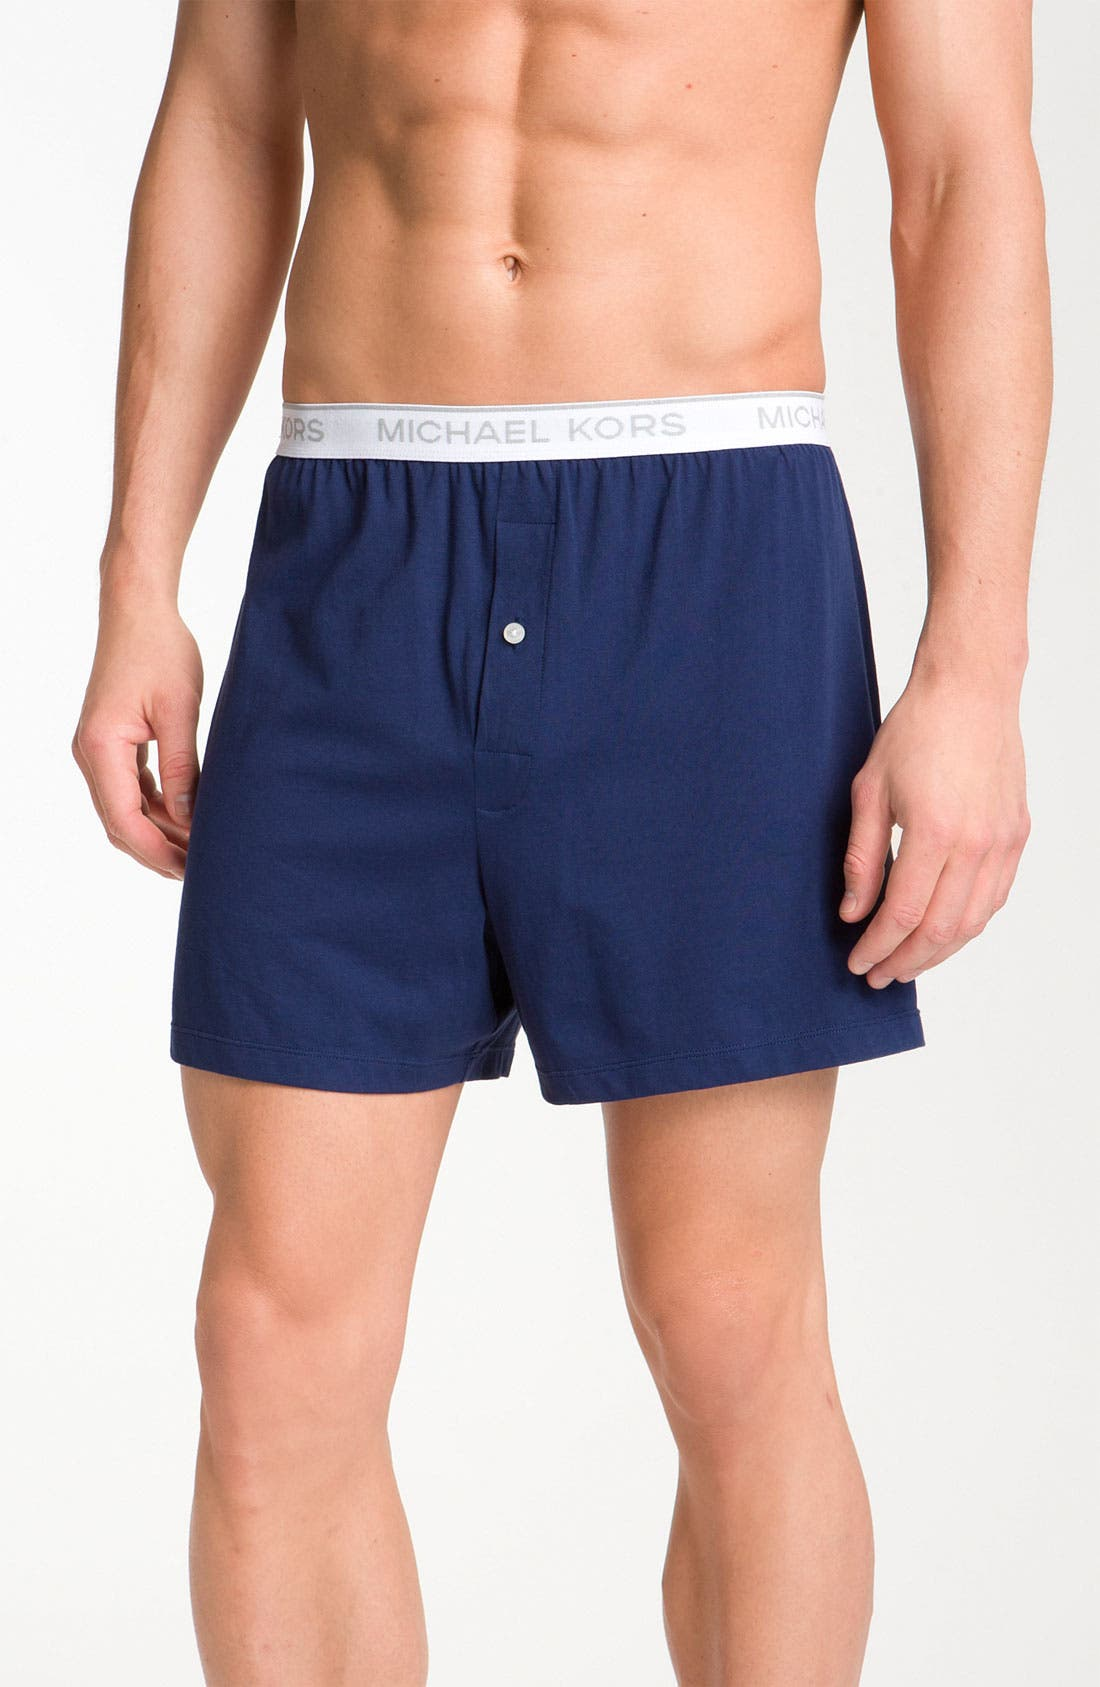 Main Image - Michael Kors Knit Boxers (2-Pack)